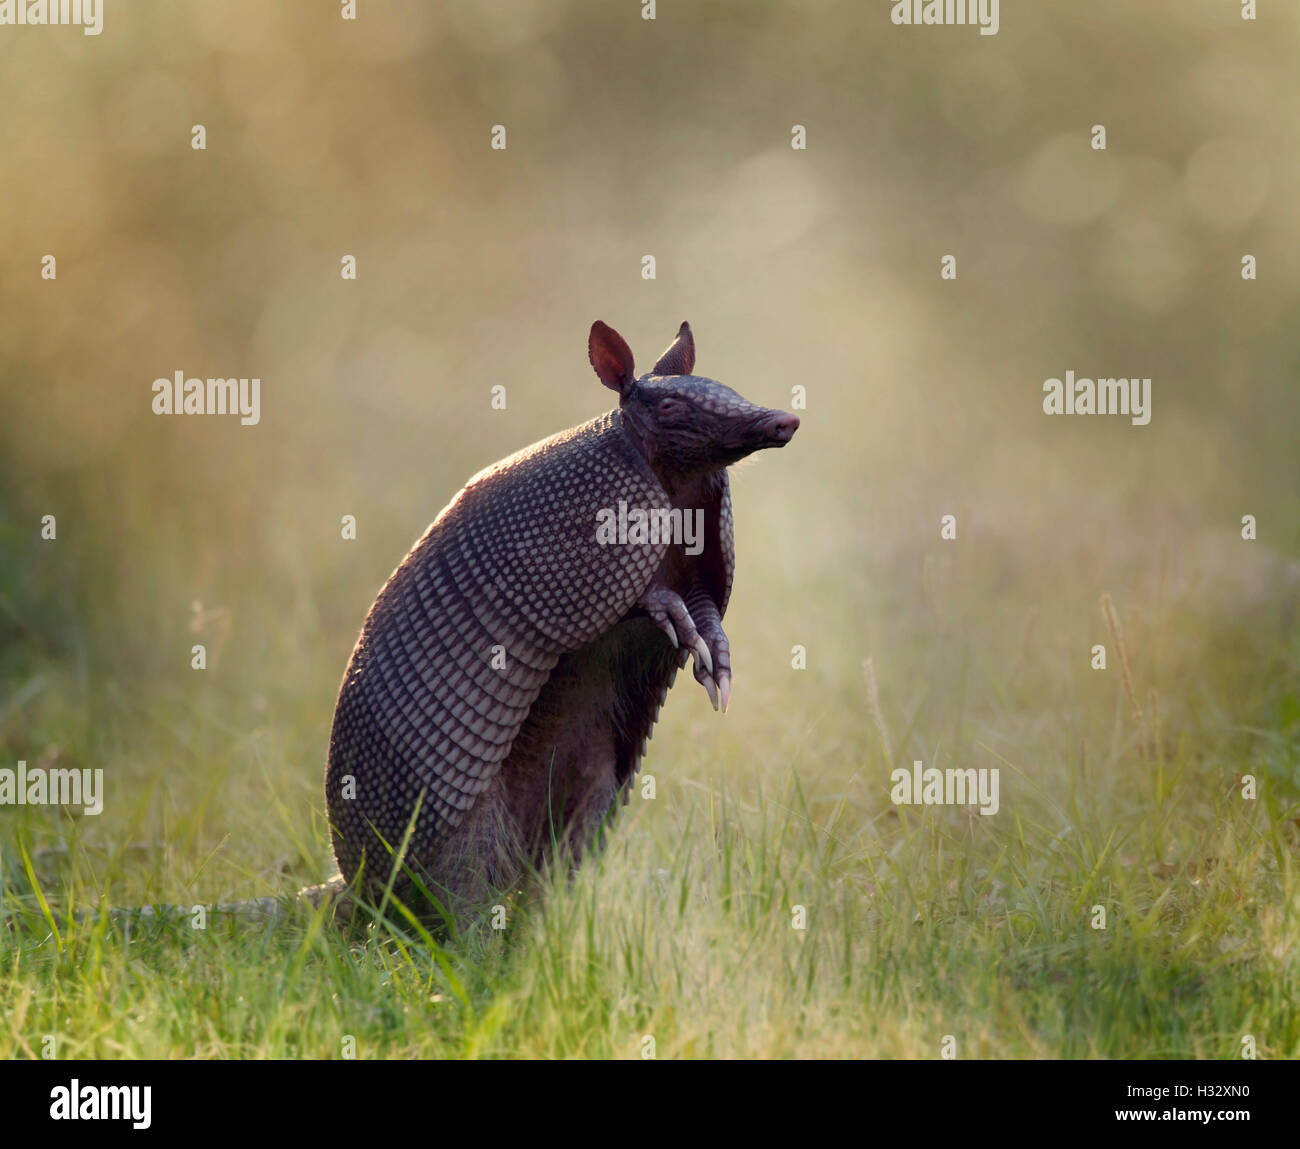 Nine-banded armadillo at sunset - Stock Image